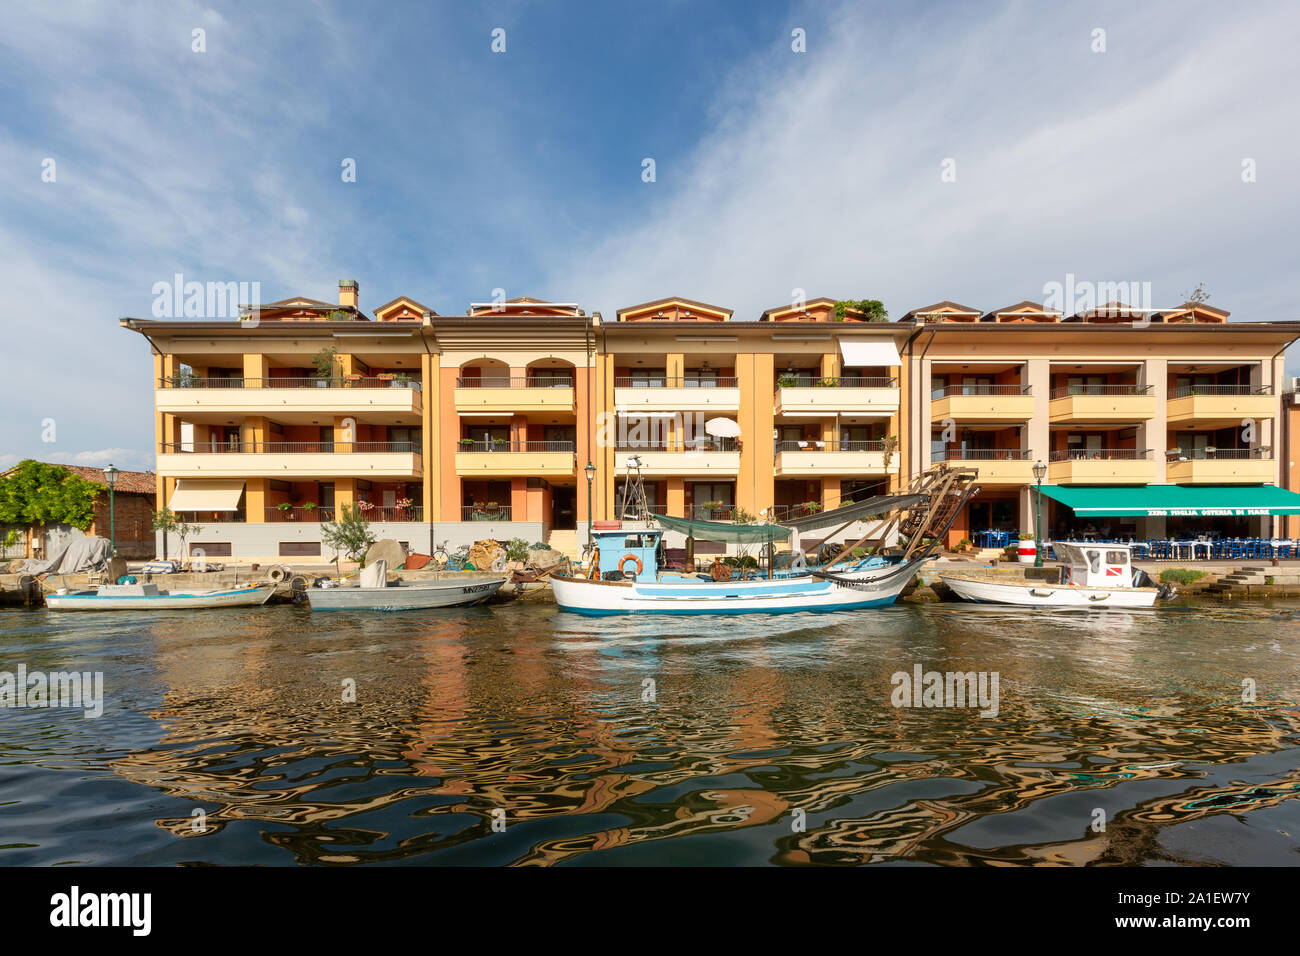 JULY 22, 2019 - GRADO, ITALY - Colored residential buildings and boats in the sunset light are mirror reflected in sea water of the harbor of Grado Stock Photo